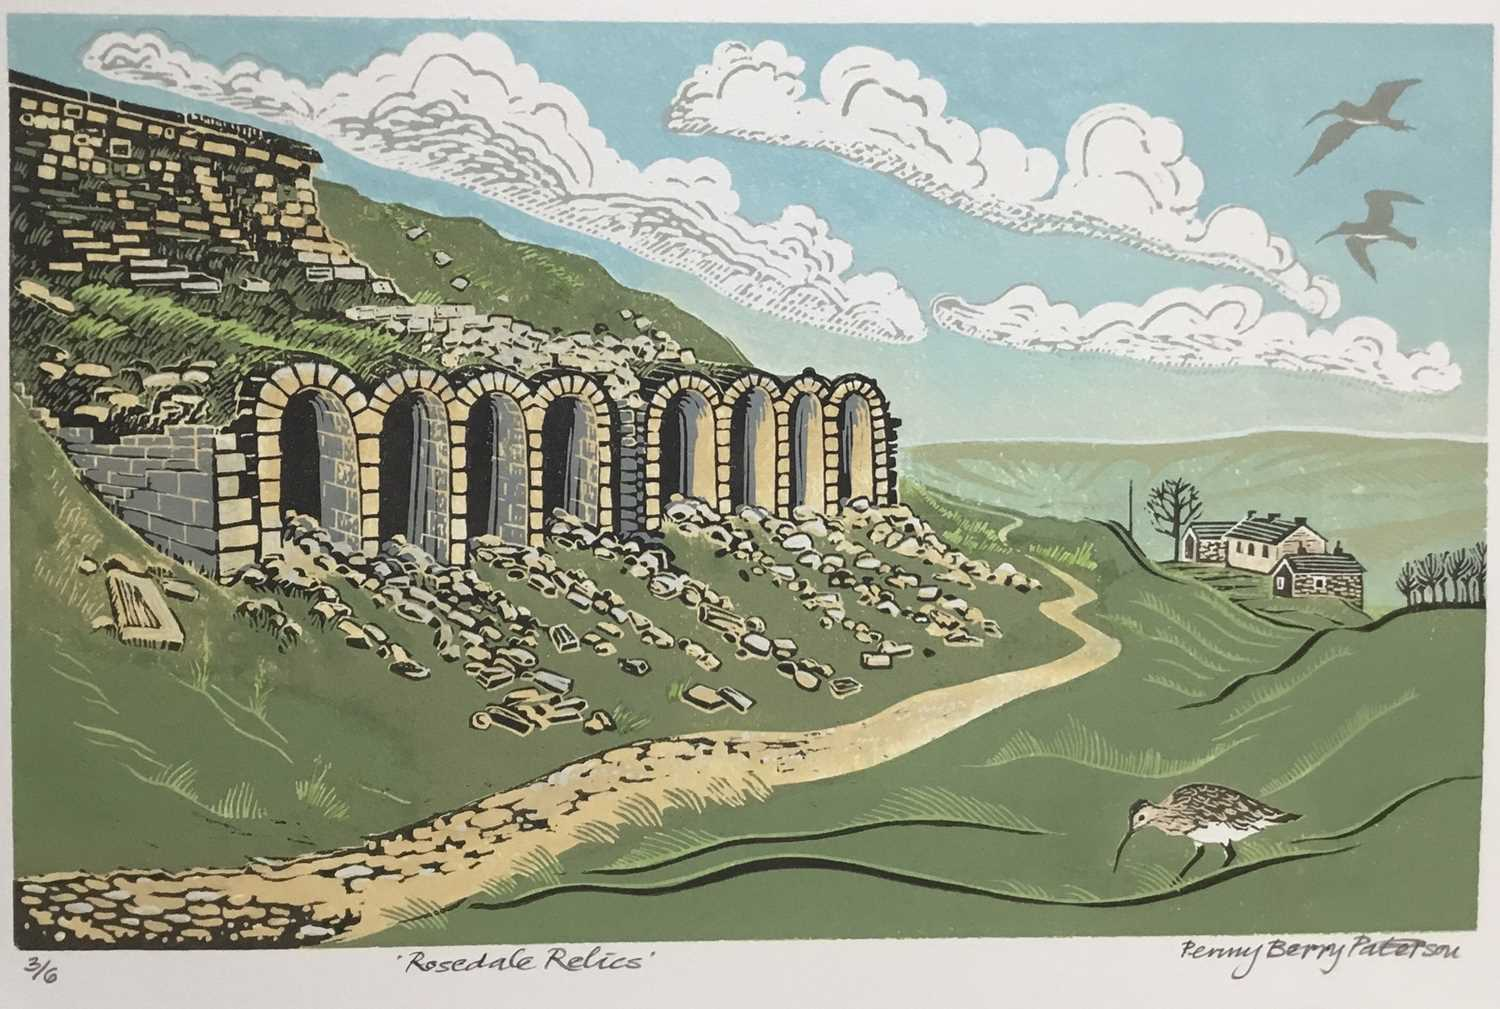 Penny Berry Paterson (1941-2021) colour linocut print, Rosedale Relics, signed and numbered 3/6, 24